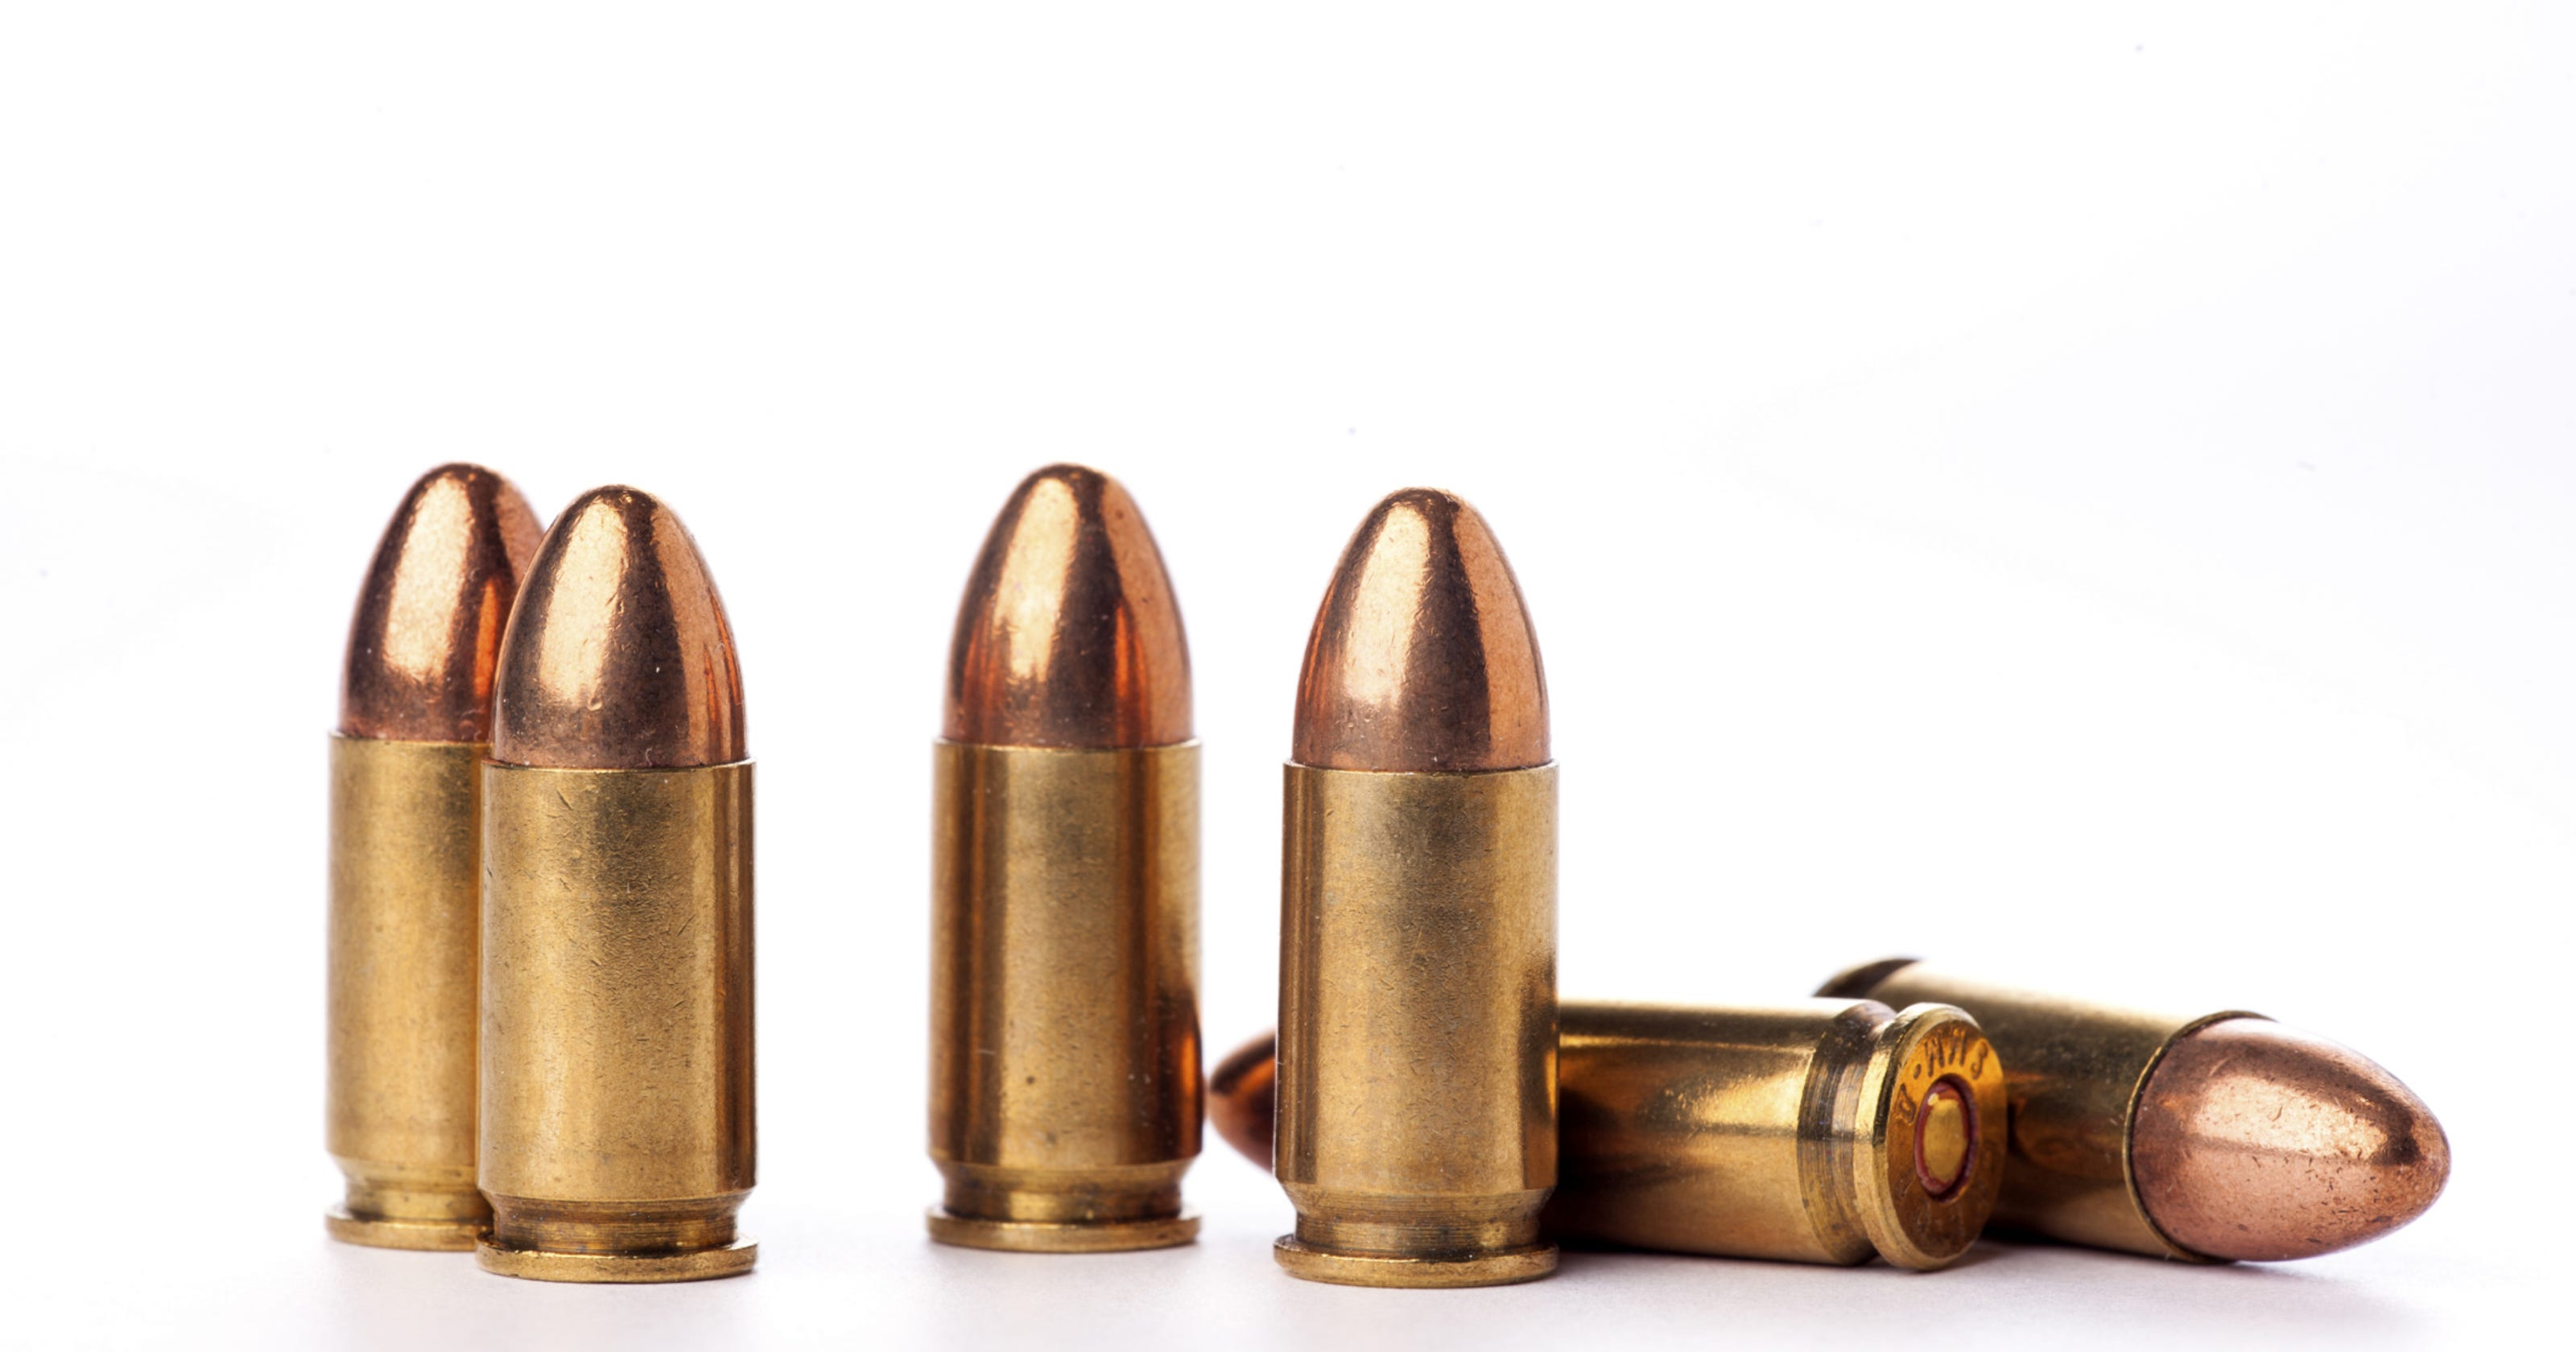 High-capacity ammo clips pulled from PX stores at military posts